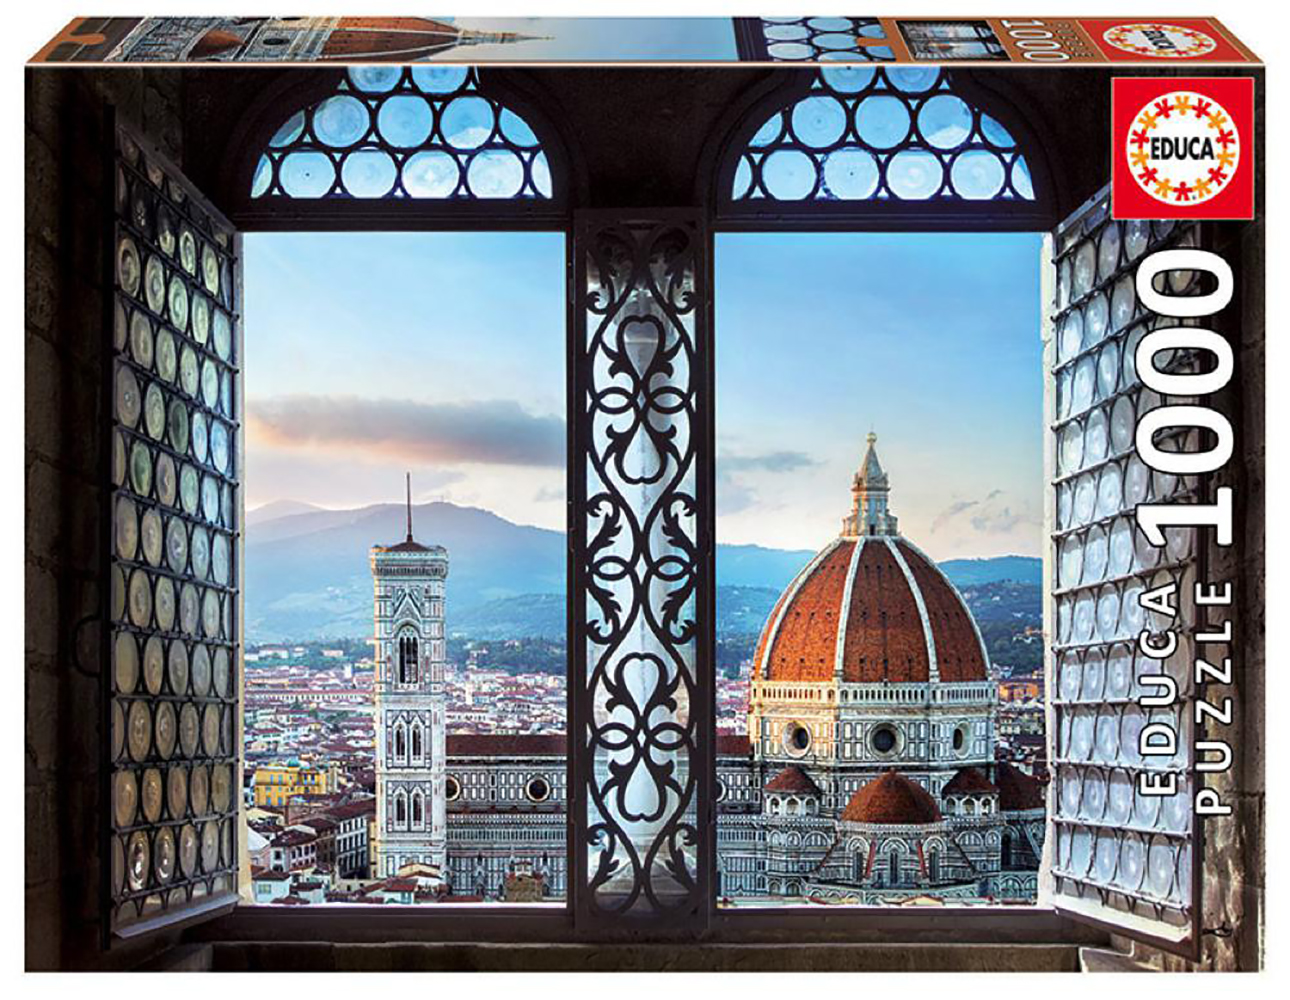 1000 pieces puzzle - Views of Florence